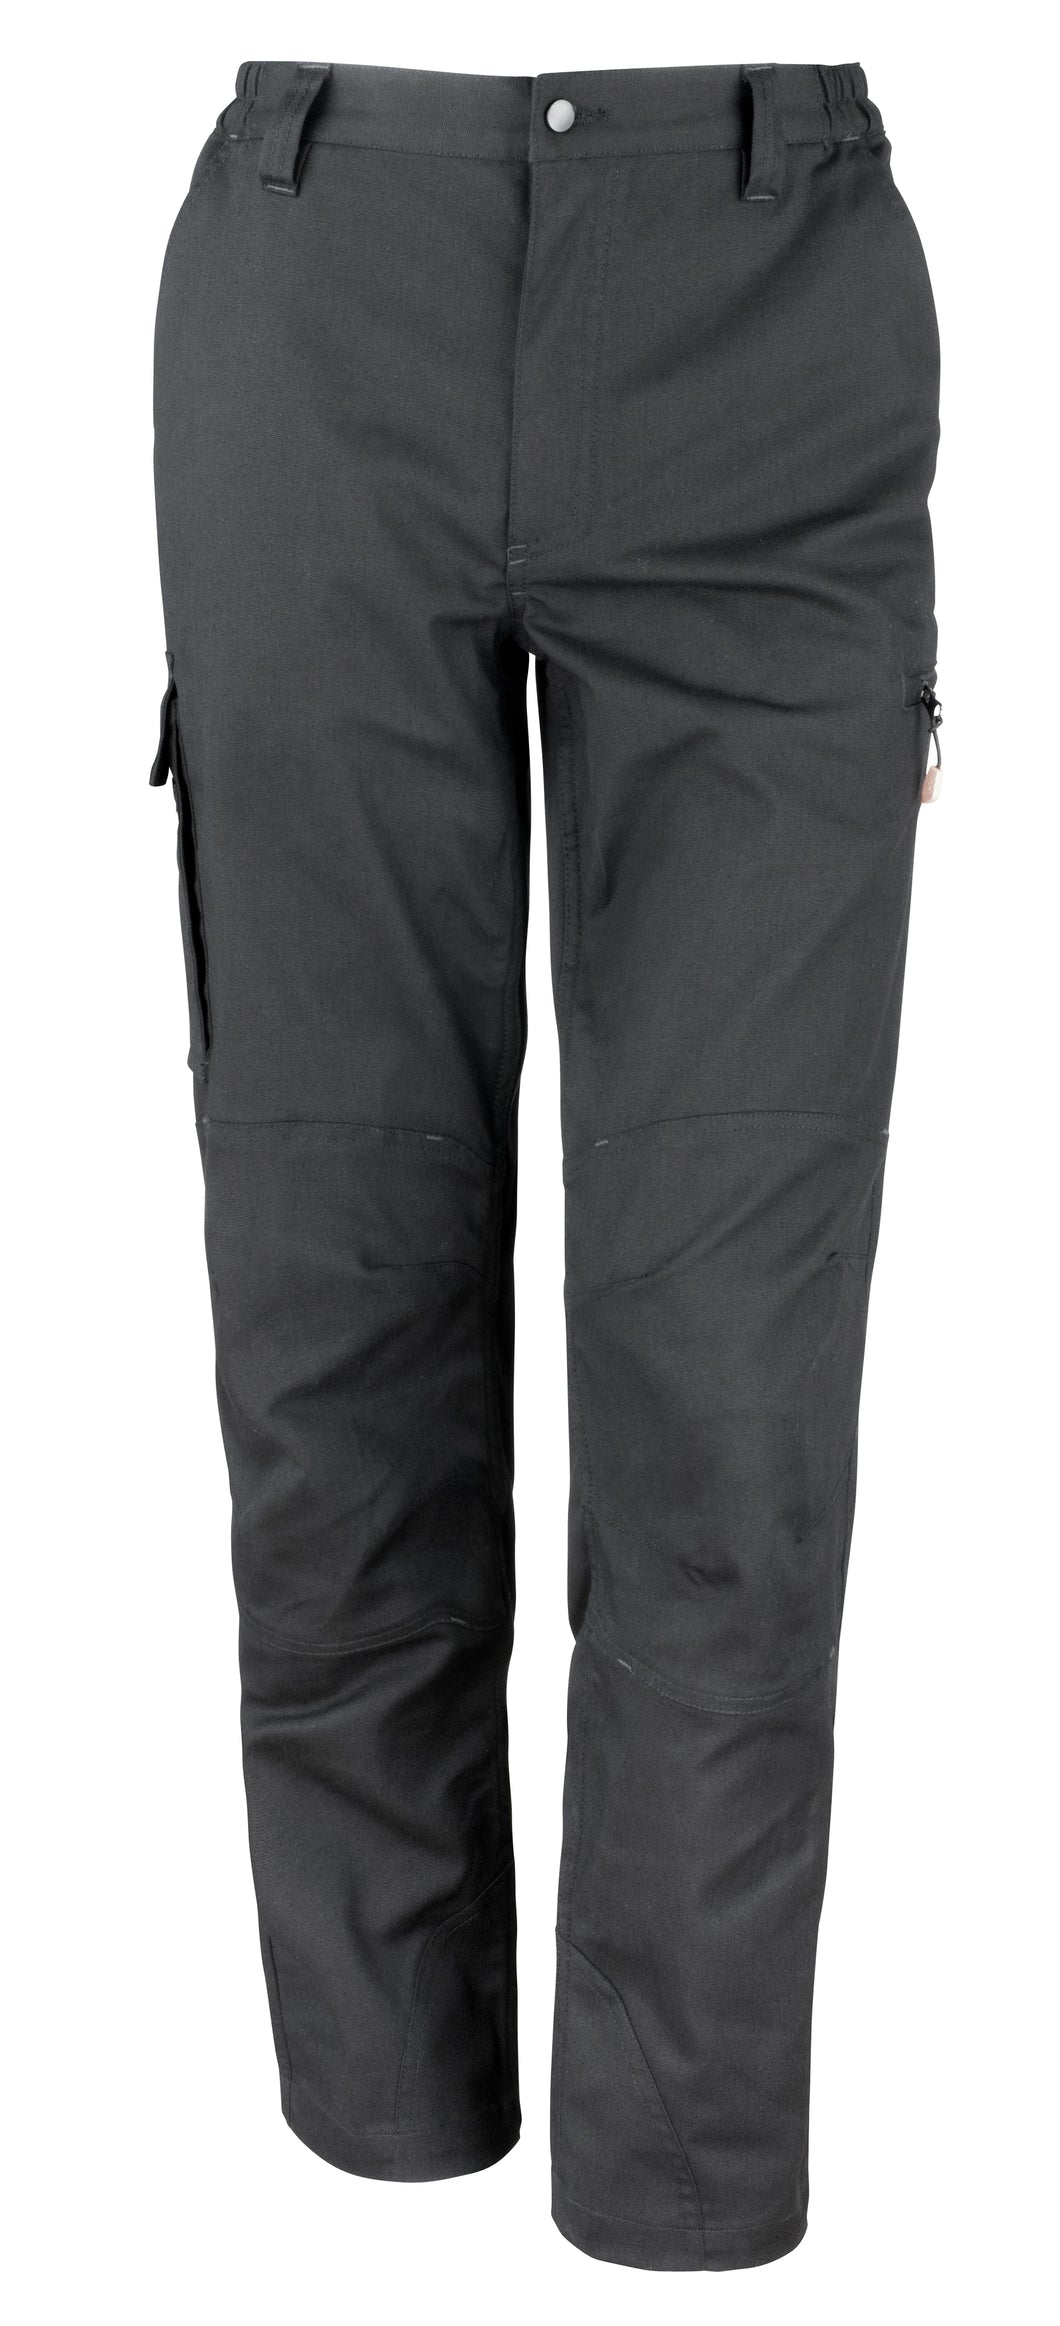 WORK-GUARD Sabre stretch trousers with Logo